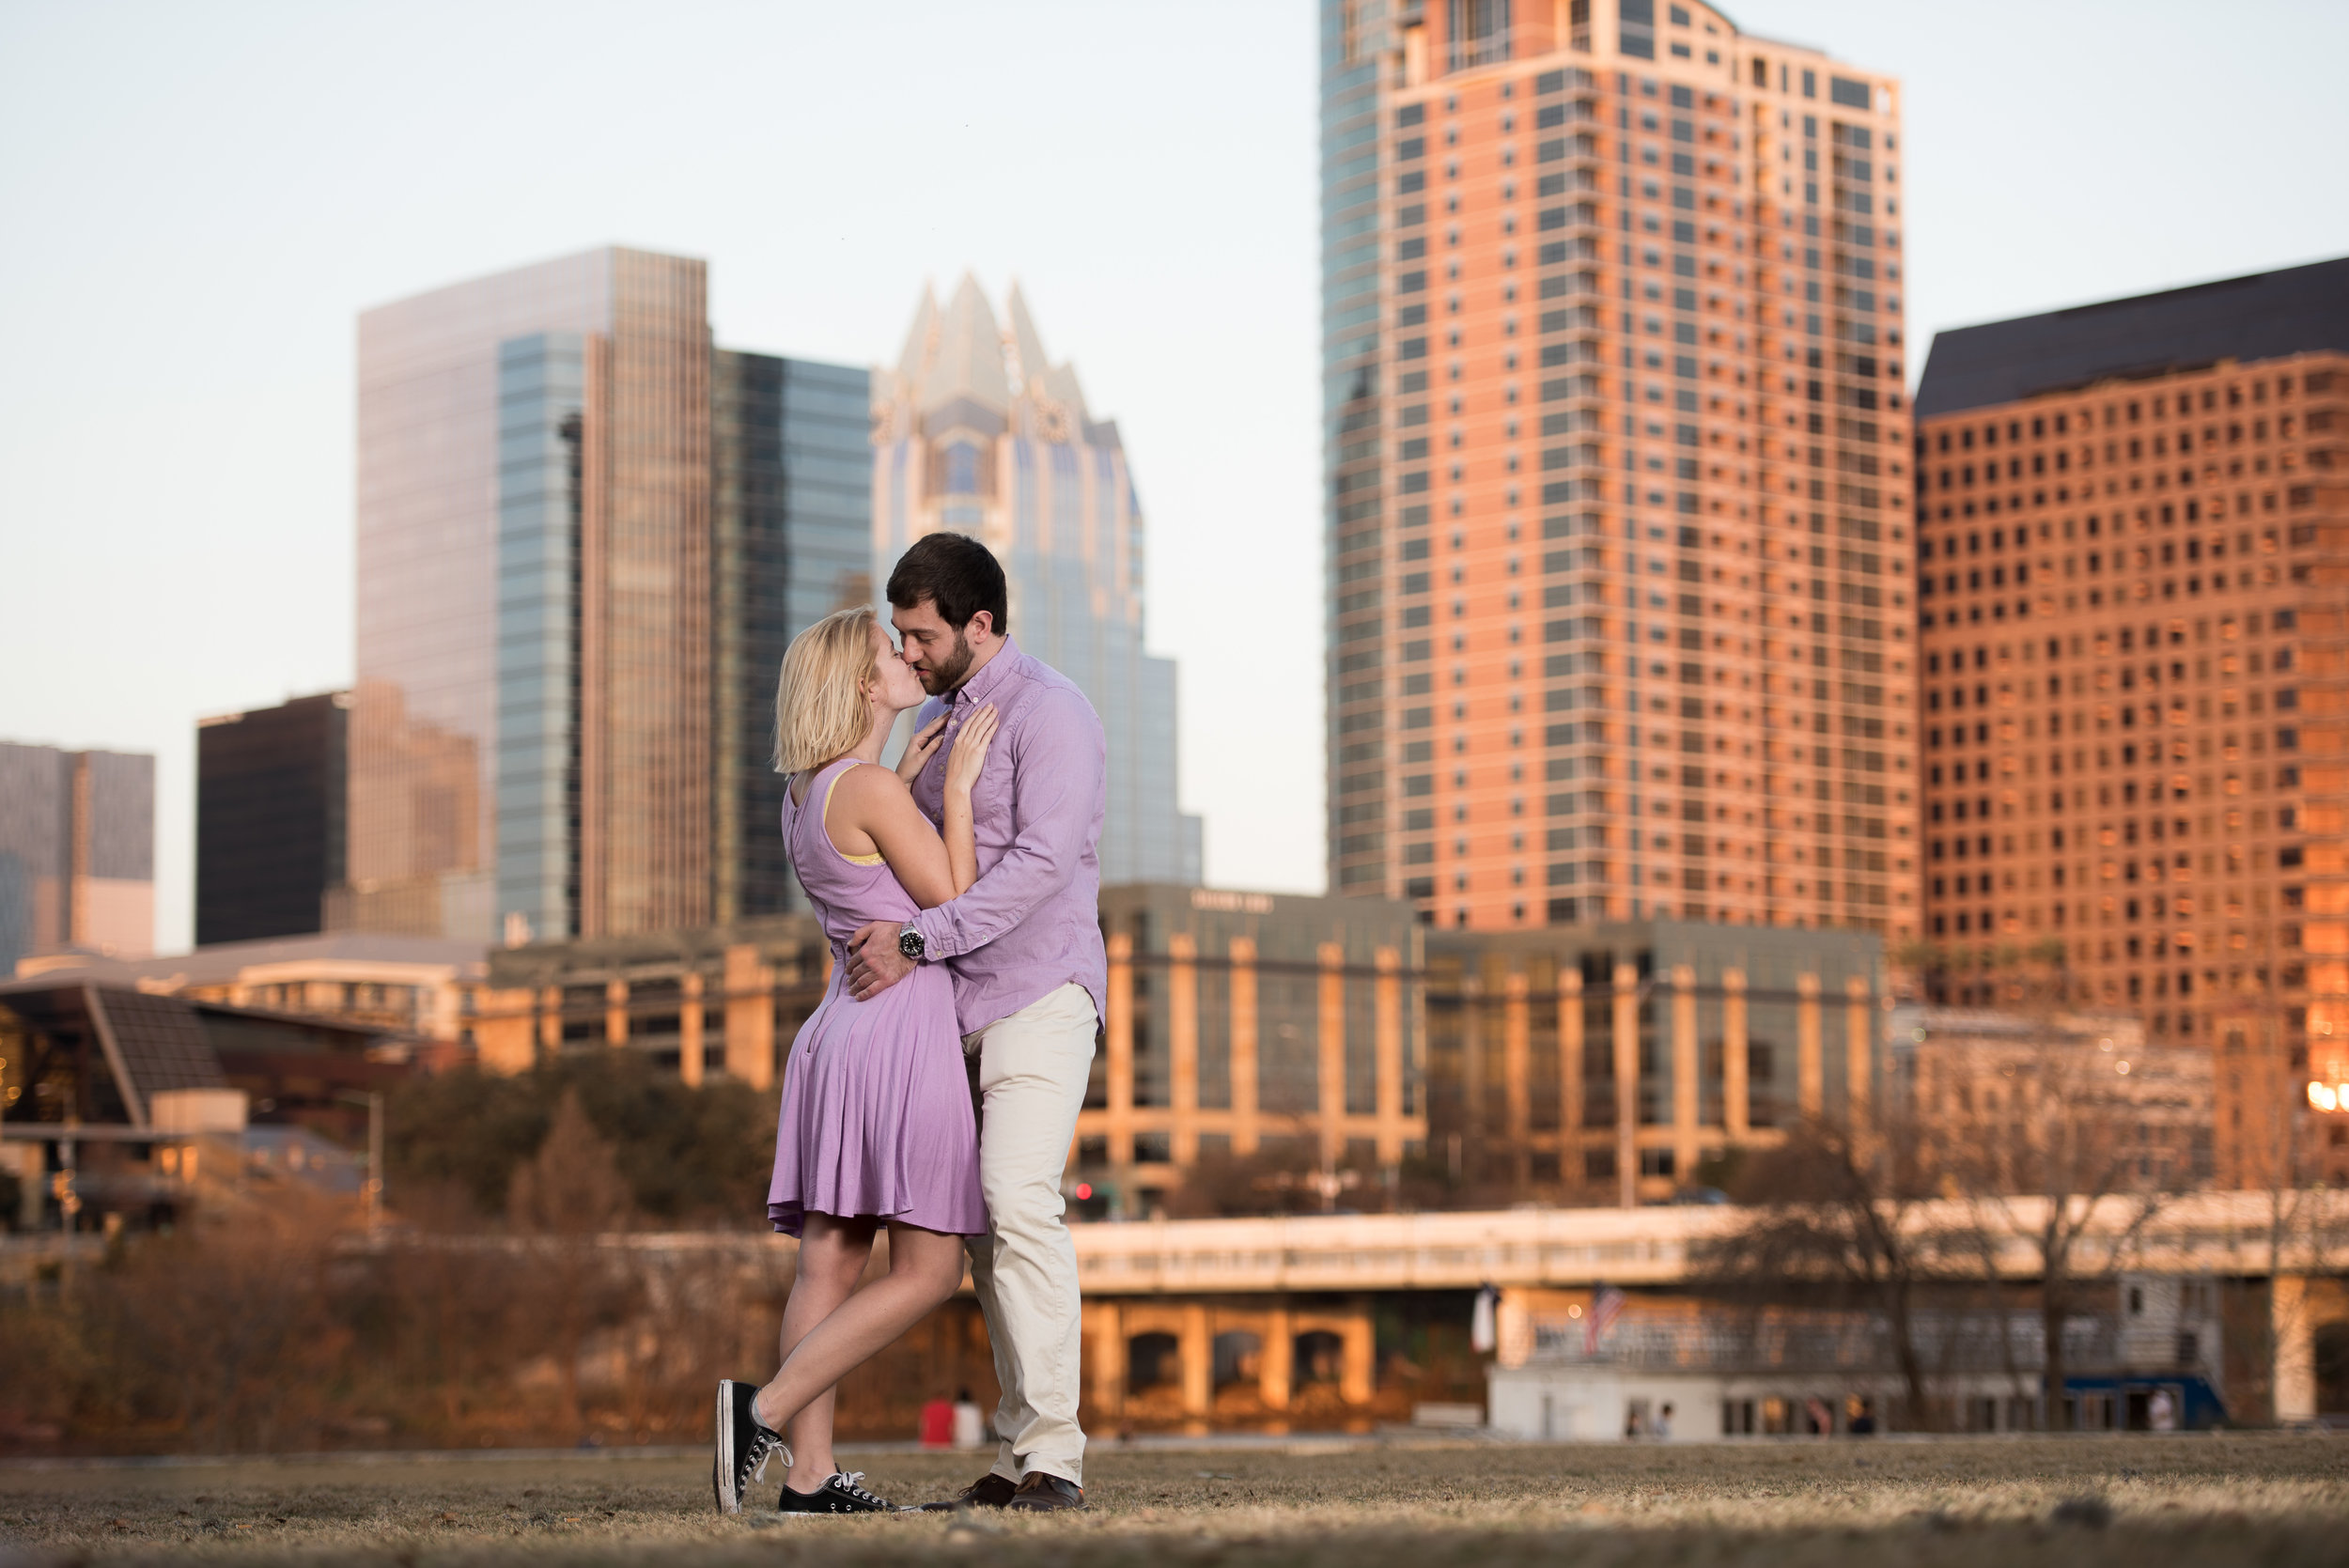 Torrie and Nick Engagement Session at Vic Mathias Shores Austin Texas-91.JPG